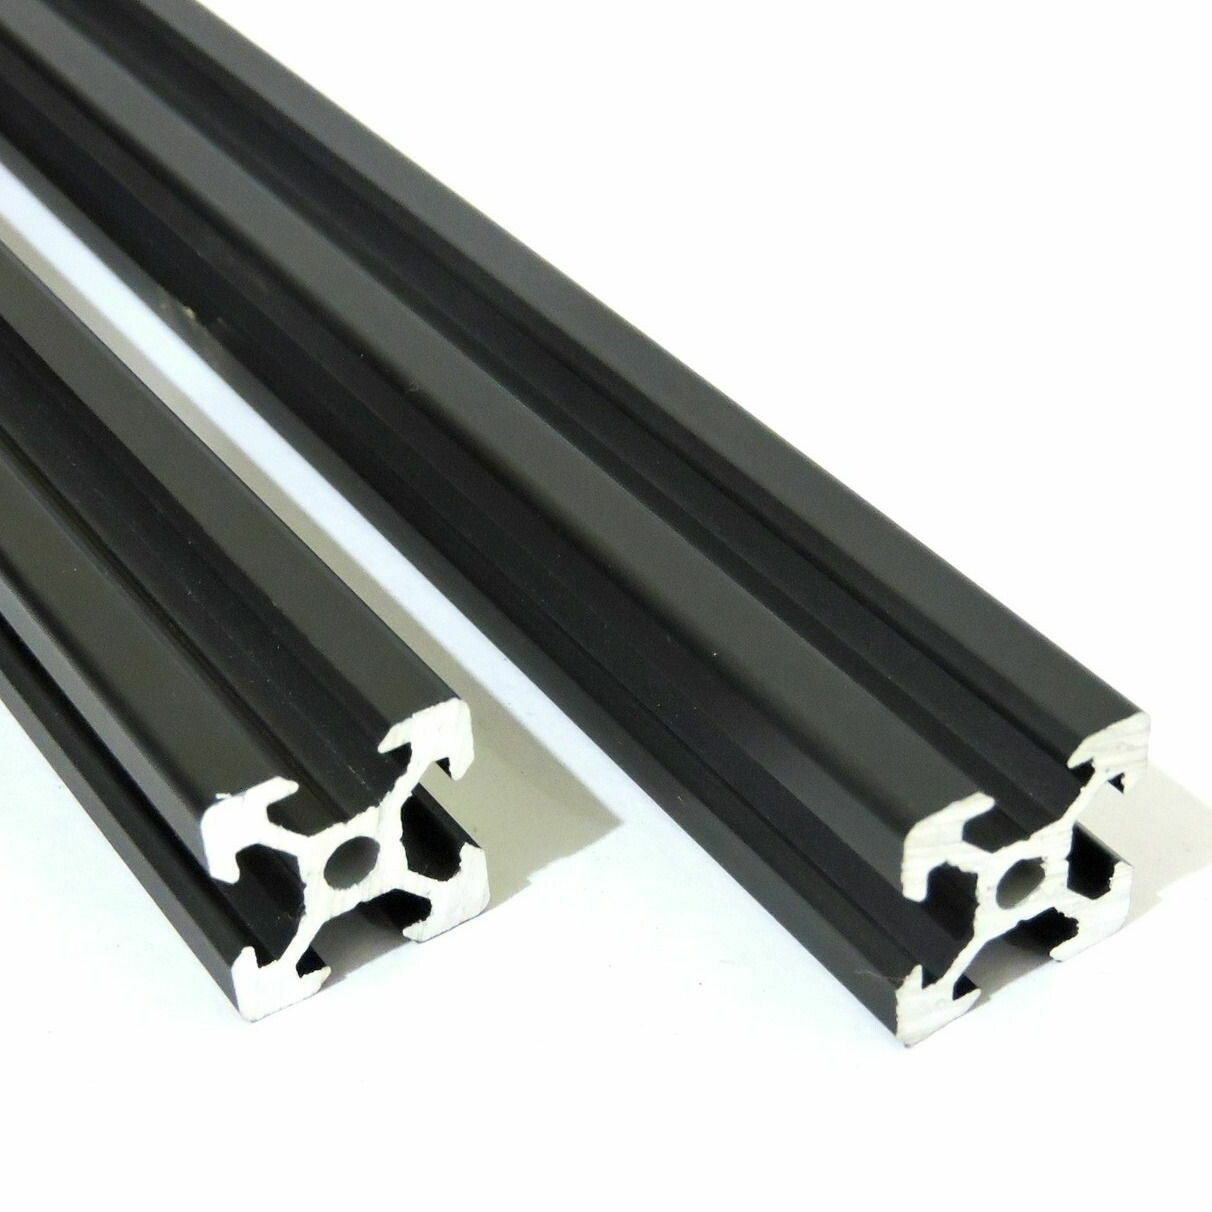 V Slot Aluminium Extrusion 2020 (Black)